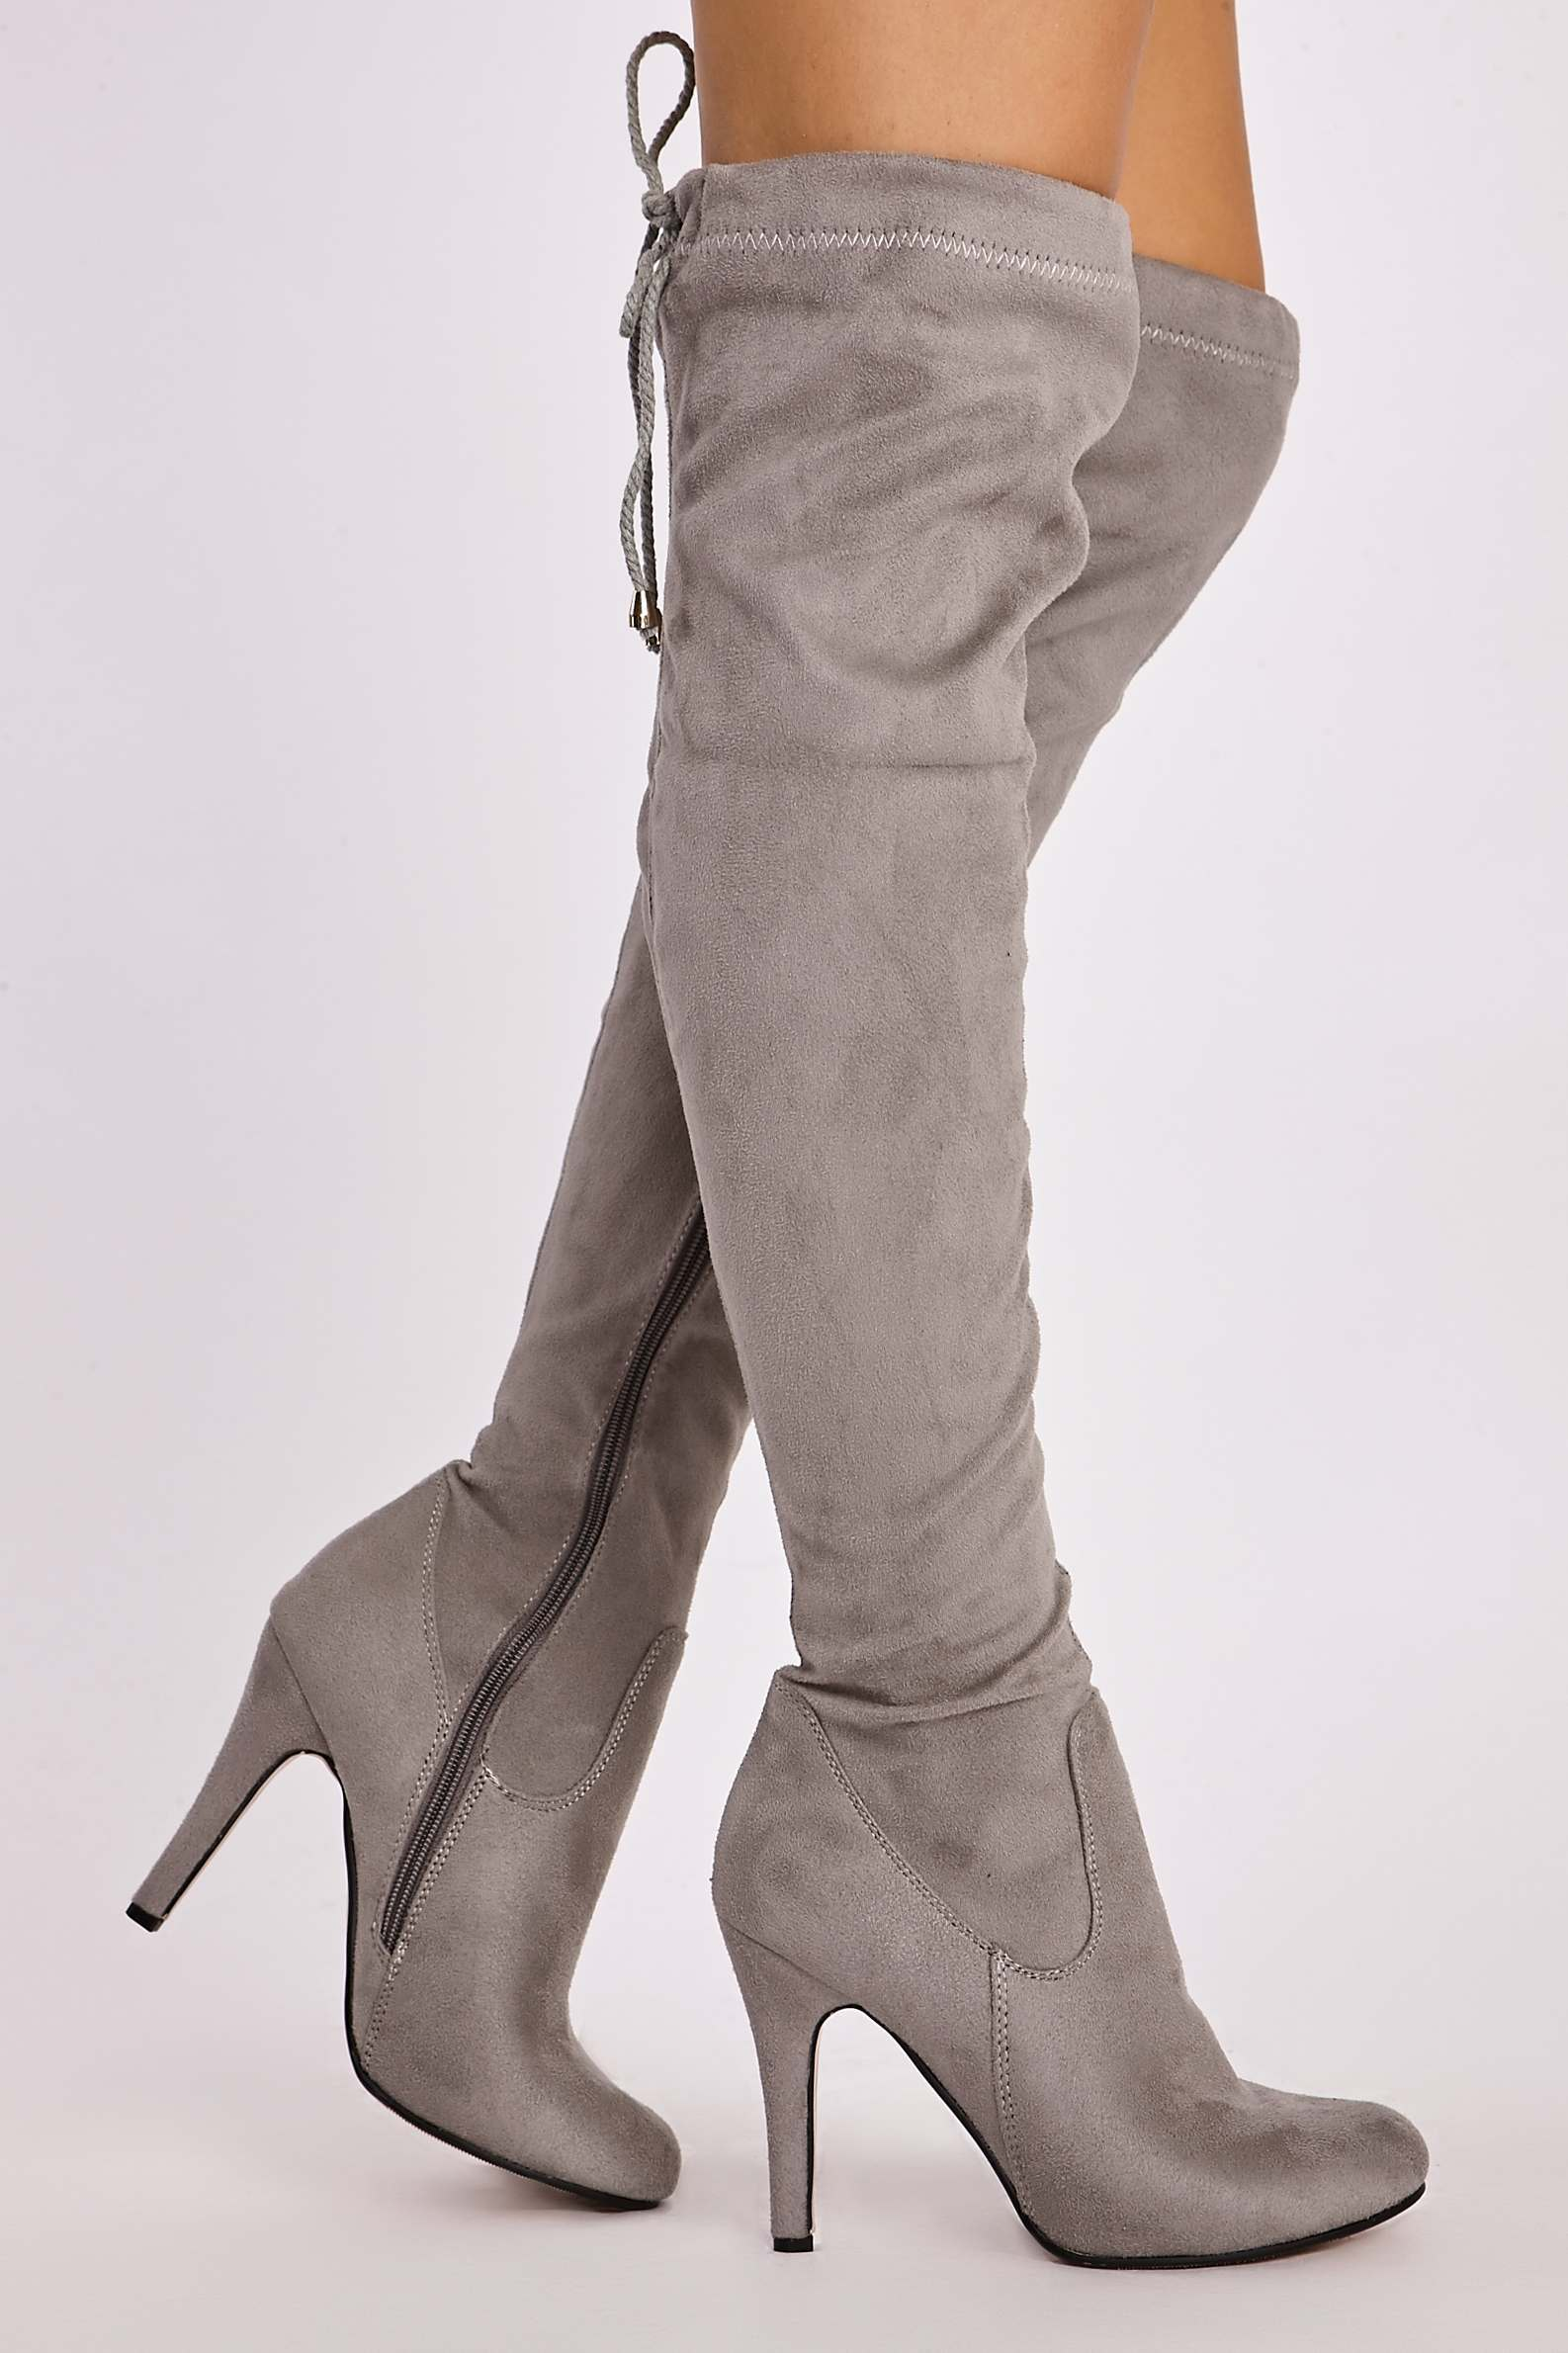 9416239dd251 Grey Boots Aviana Grey Faux Suede Over the Knee Boots